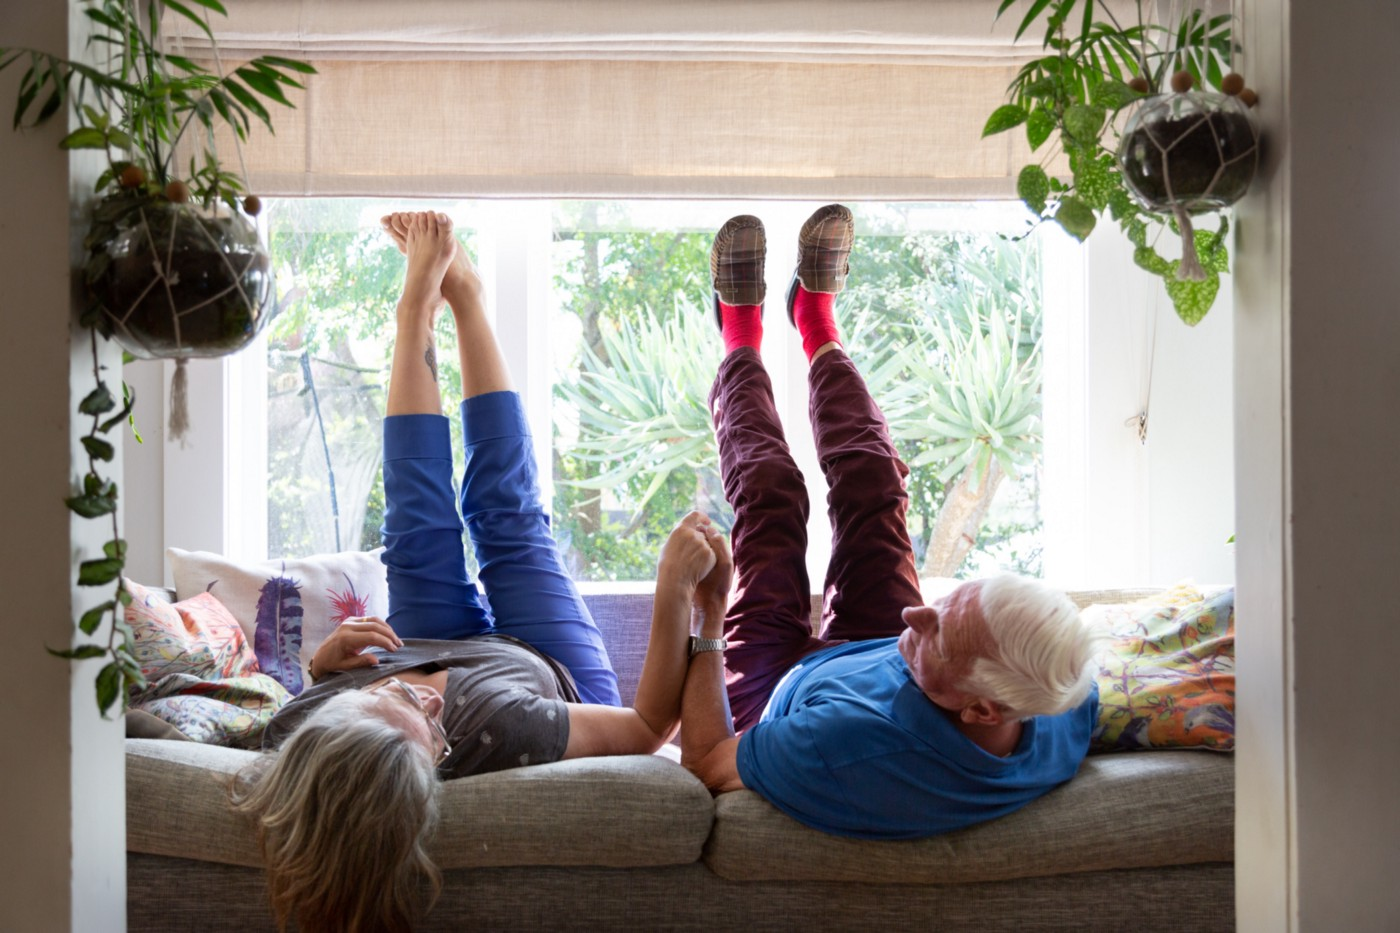 A senior couple lie next to each other on the sofa with their legs in the air. They are holding hands.